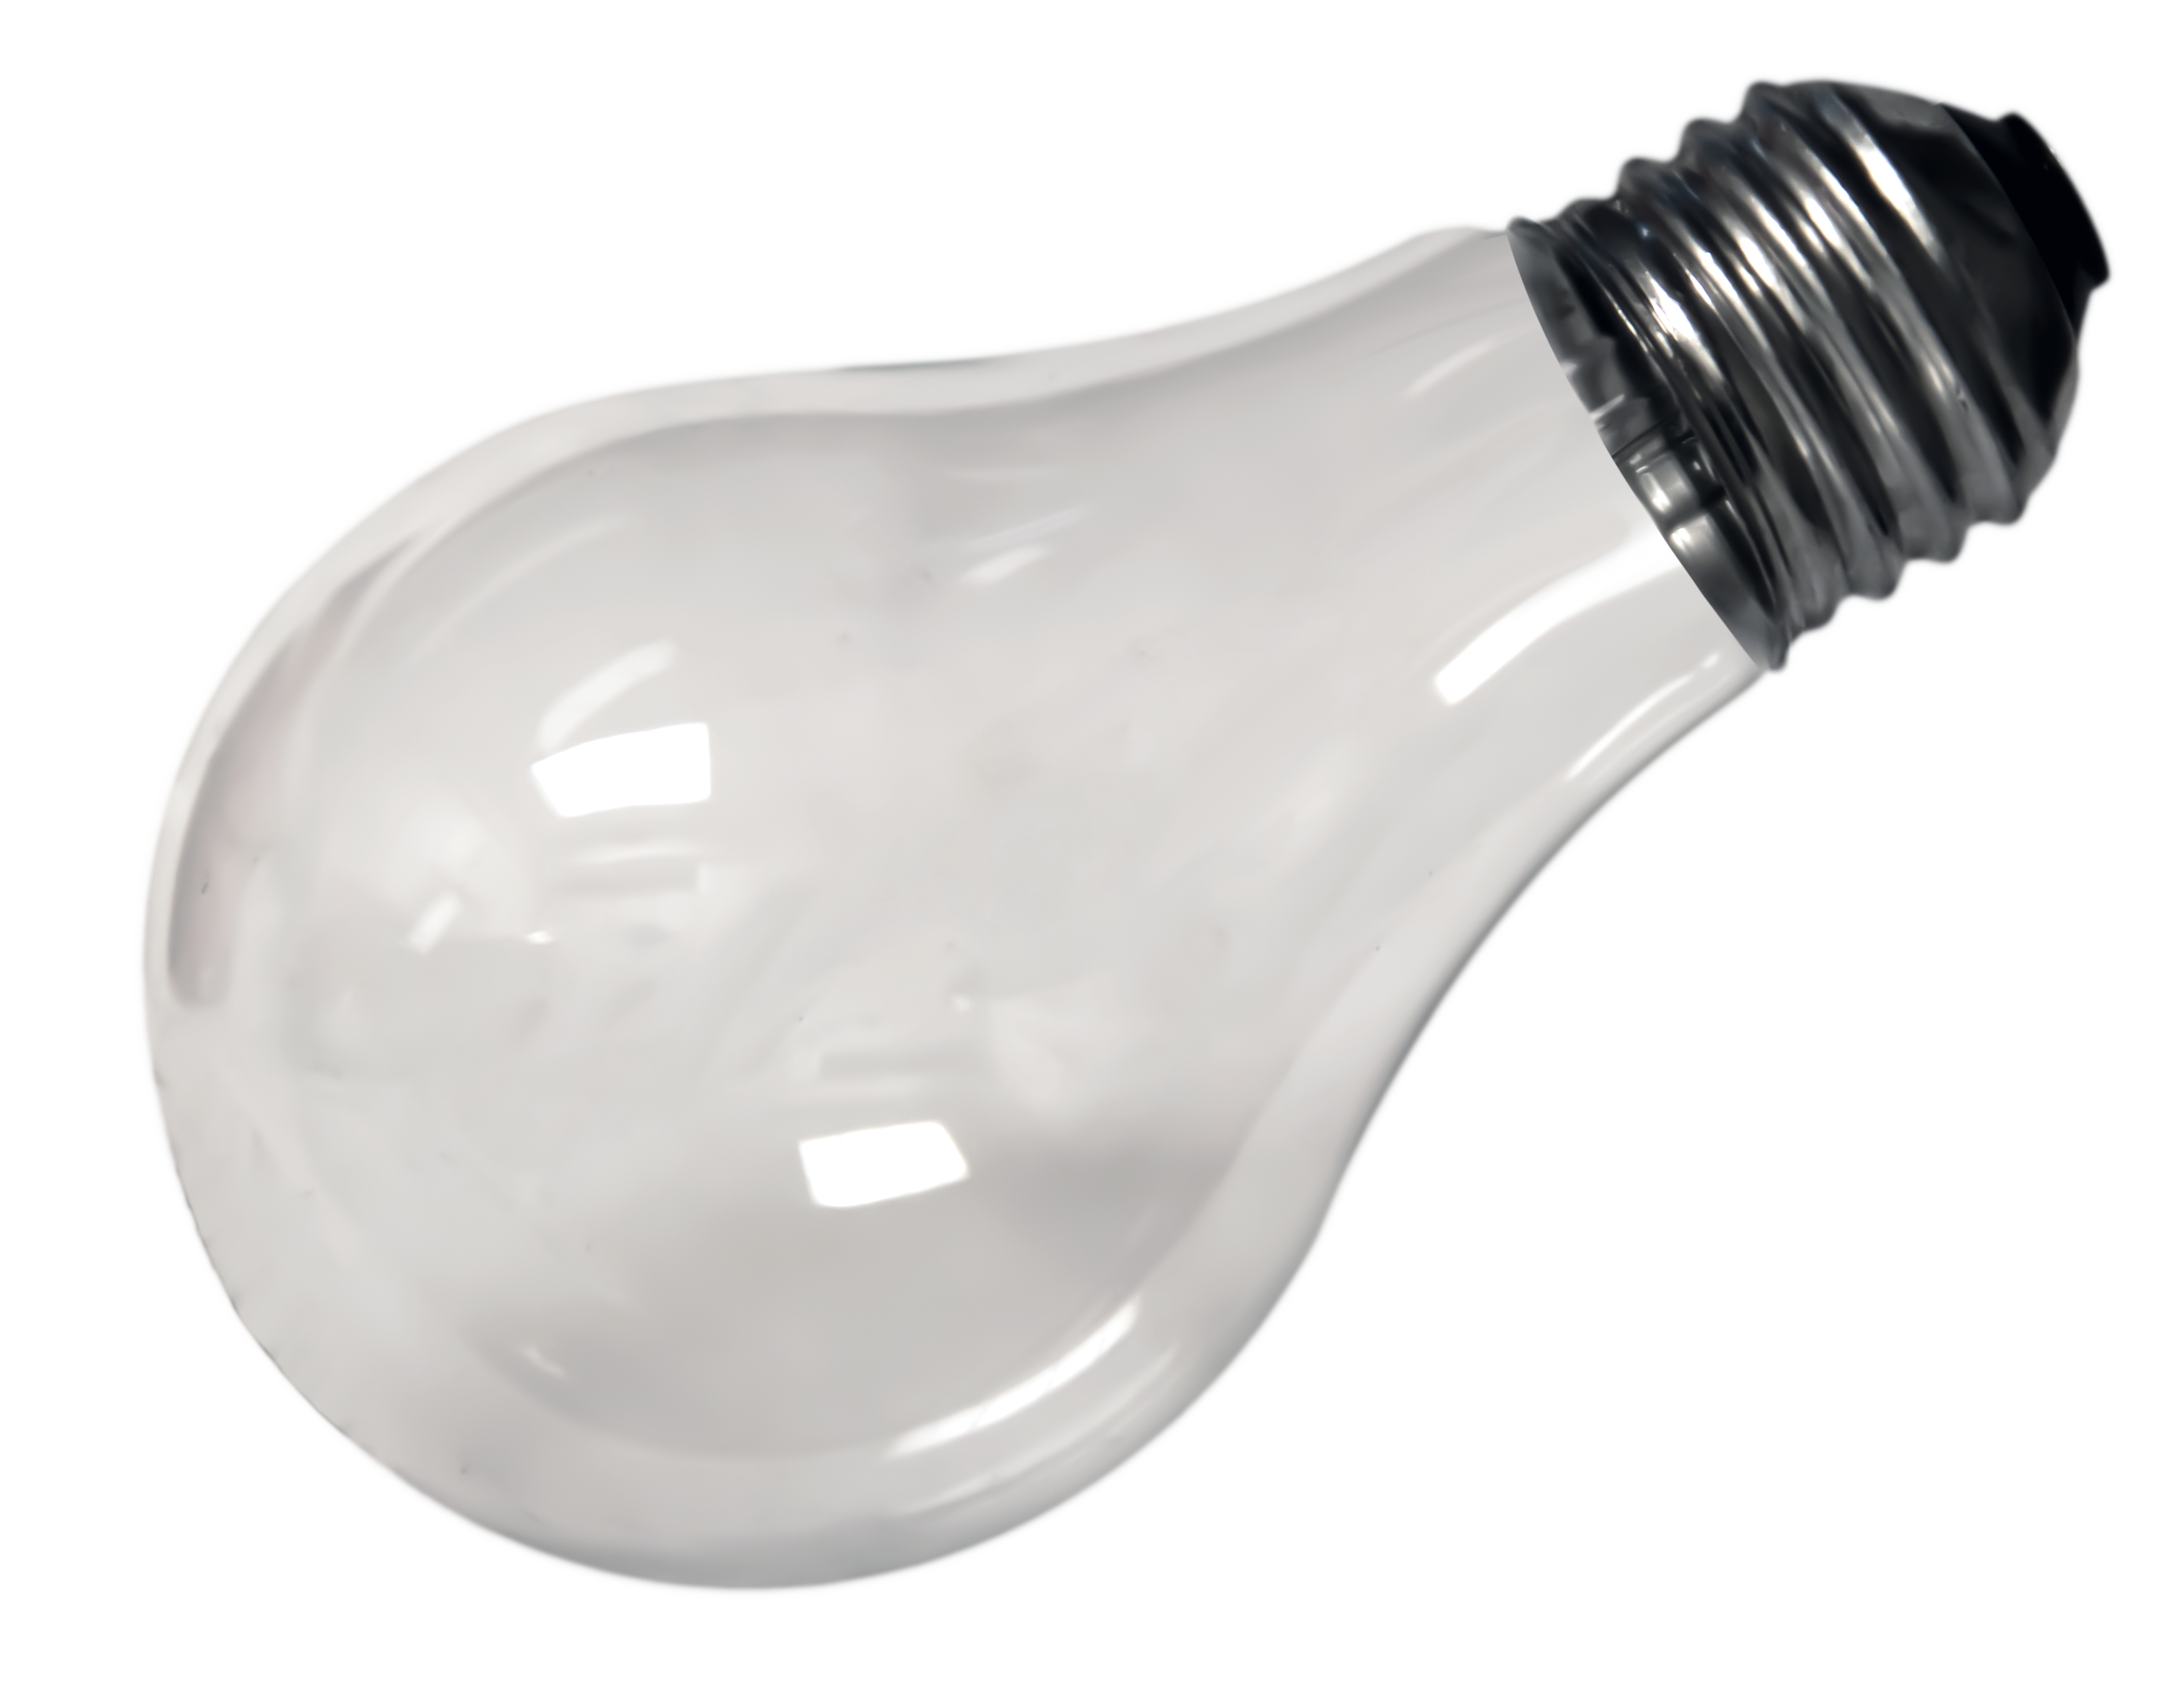 Light Bulb Png Picture PNG Image - PNG HD Light Bulb